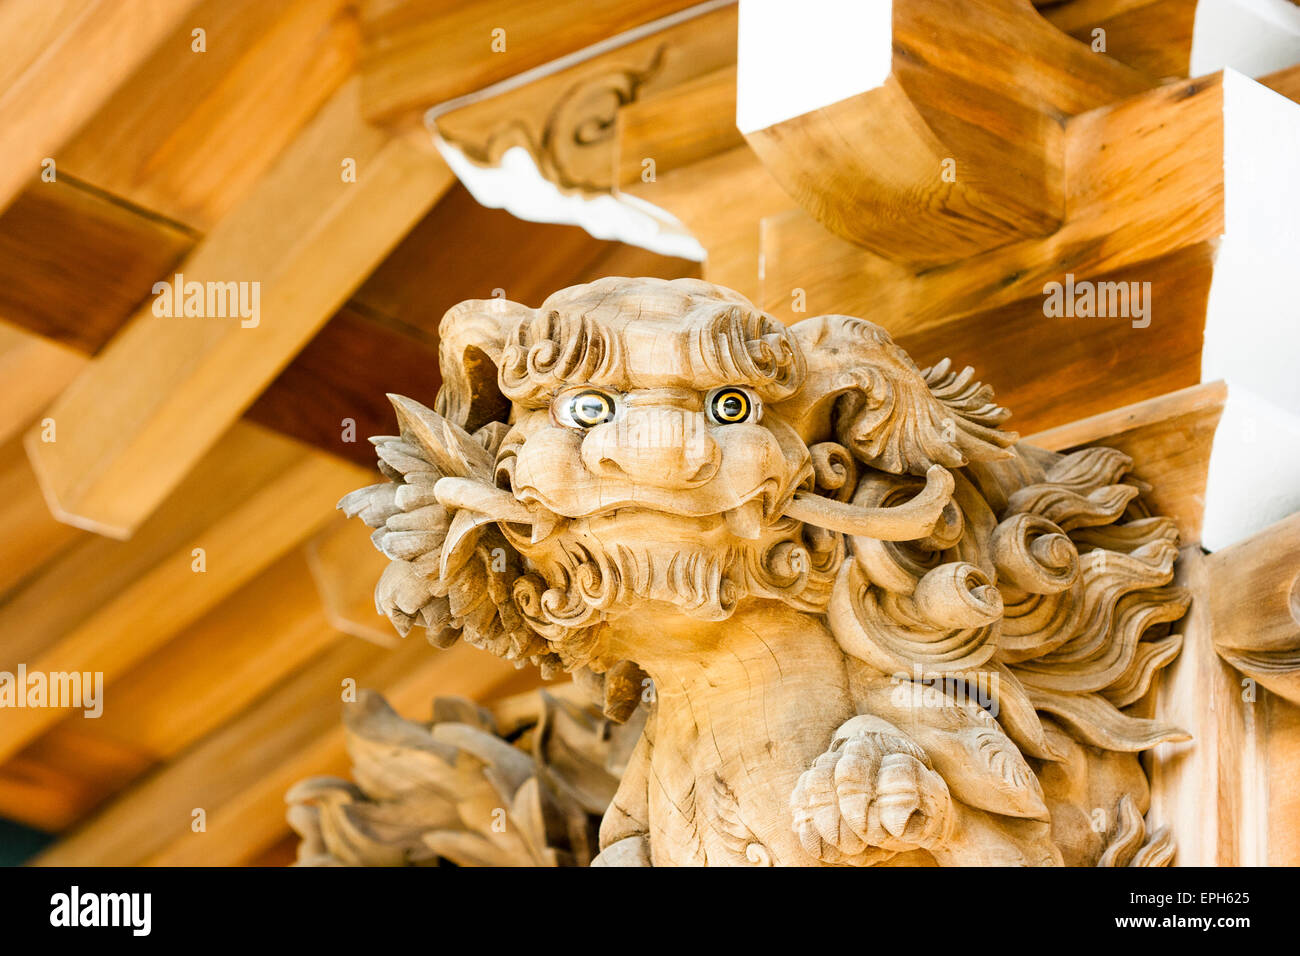 Japan, Kobe, Suma-dera temple. Buddhist Kondo Hall, roof detail. Wooden carved face of dog like dragon with inlaid - Stock Image